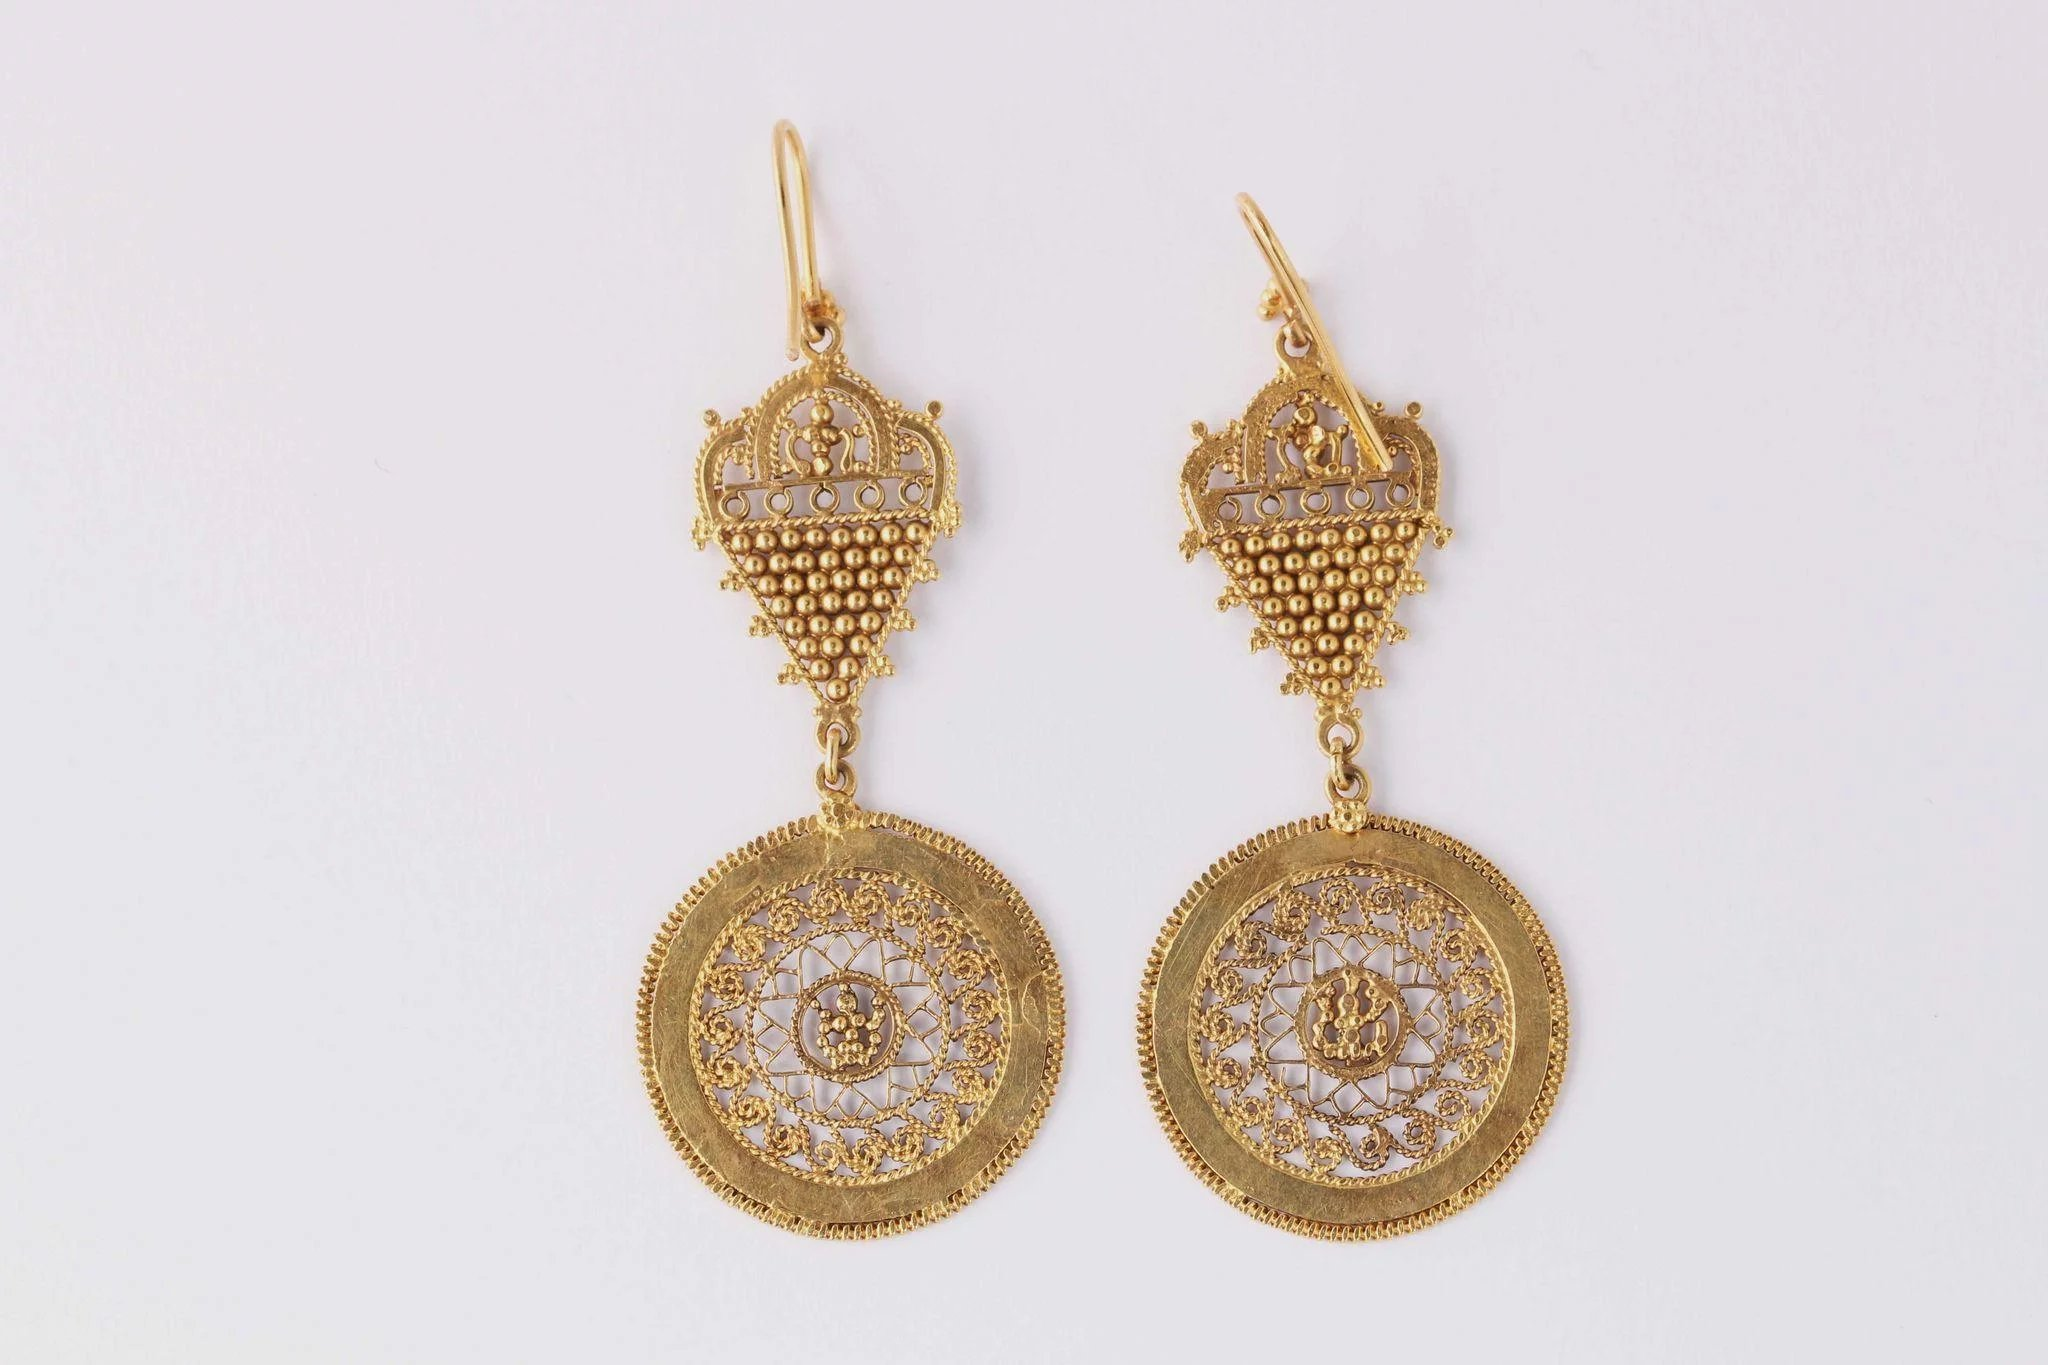 and logo logos jewelry cc pin vintage earrings chanel gold